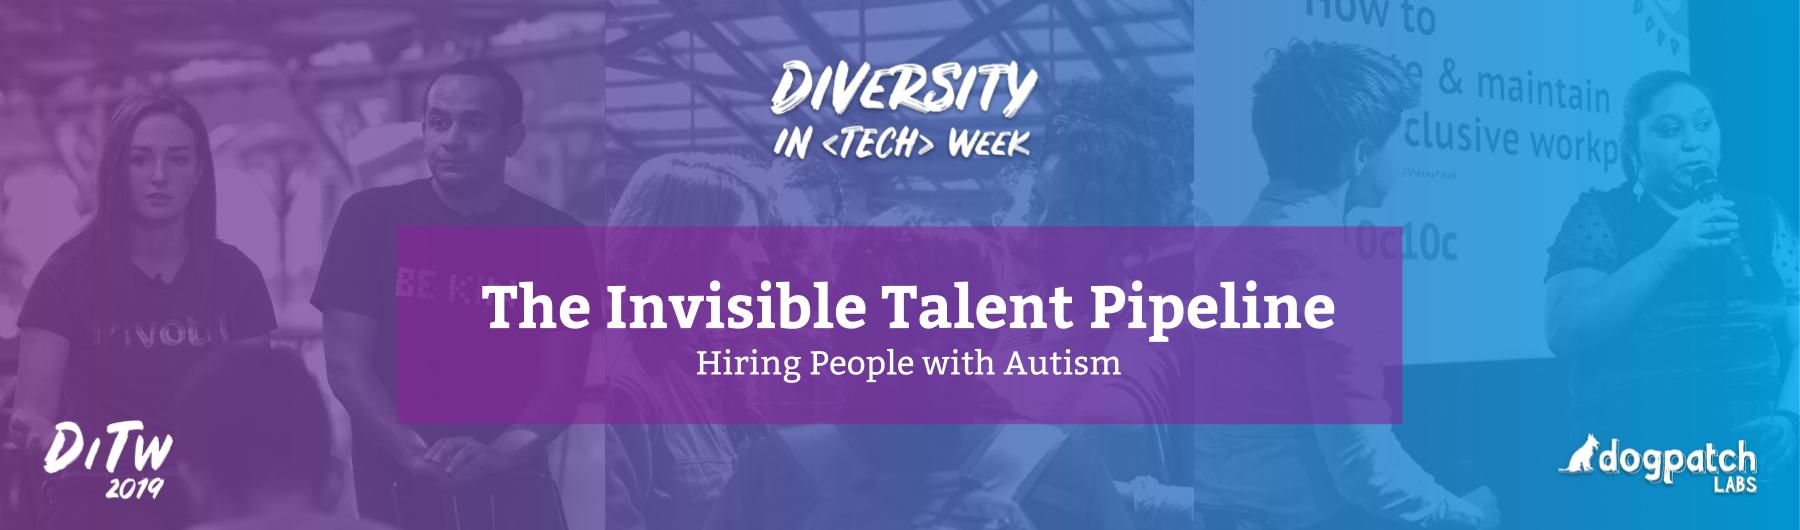 The Invisible Talent Pipeline in Tech: Hiring People with Autism